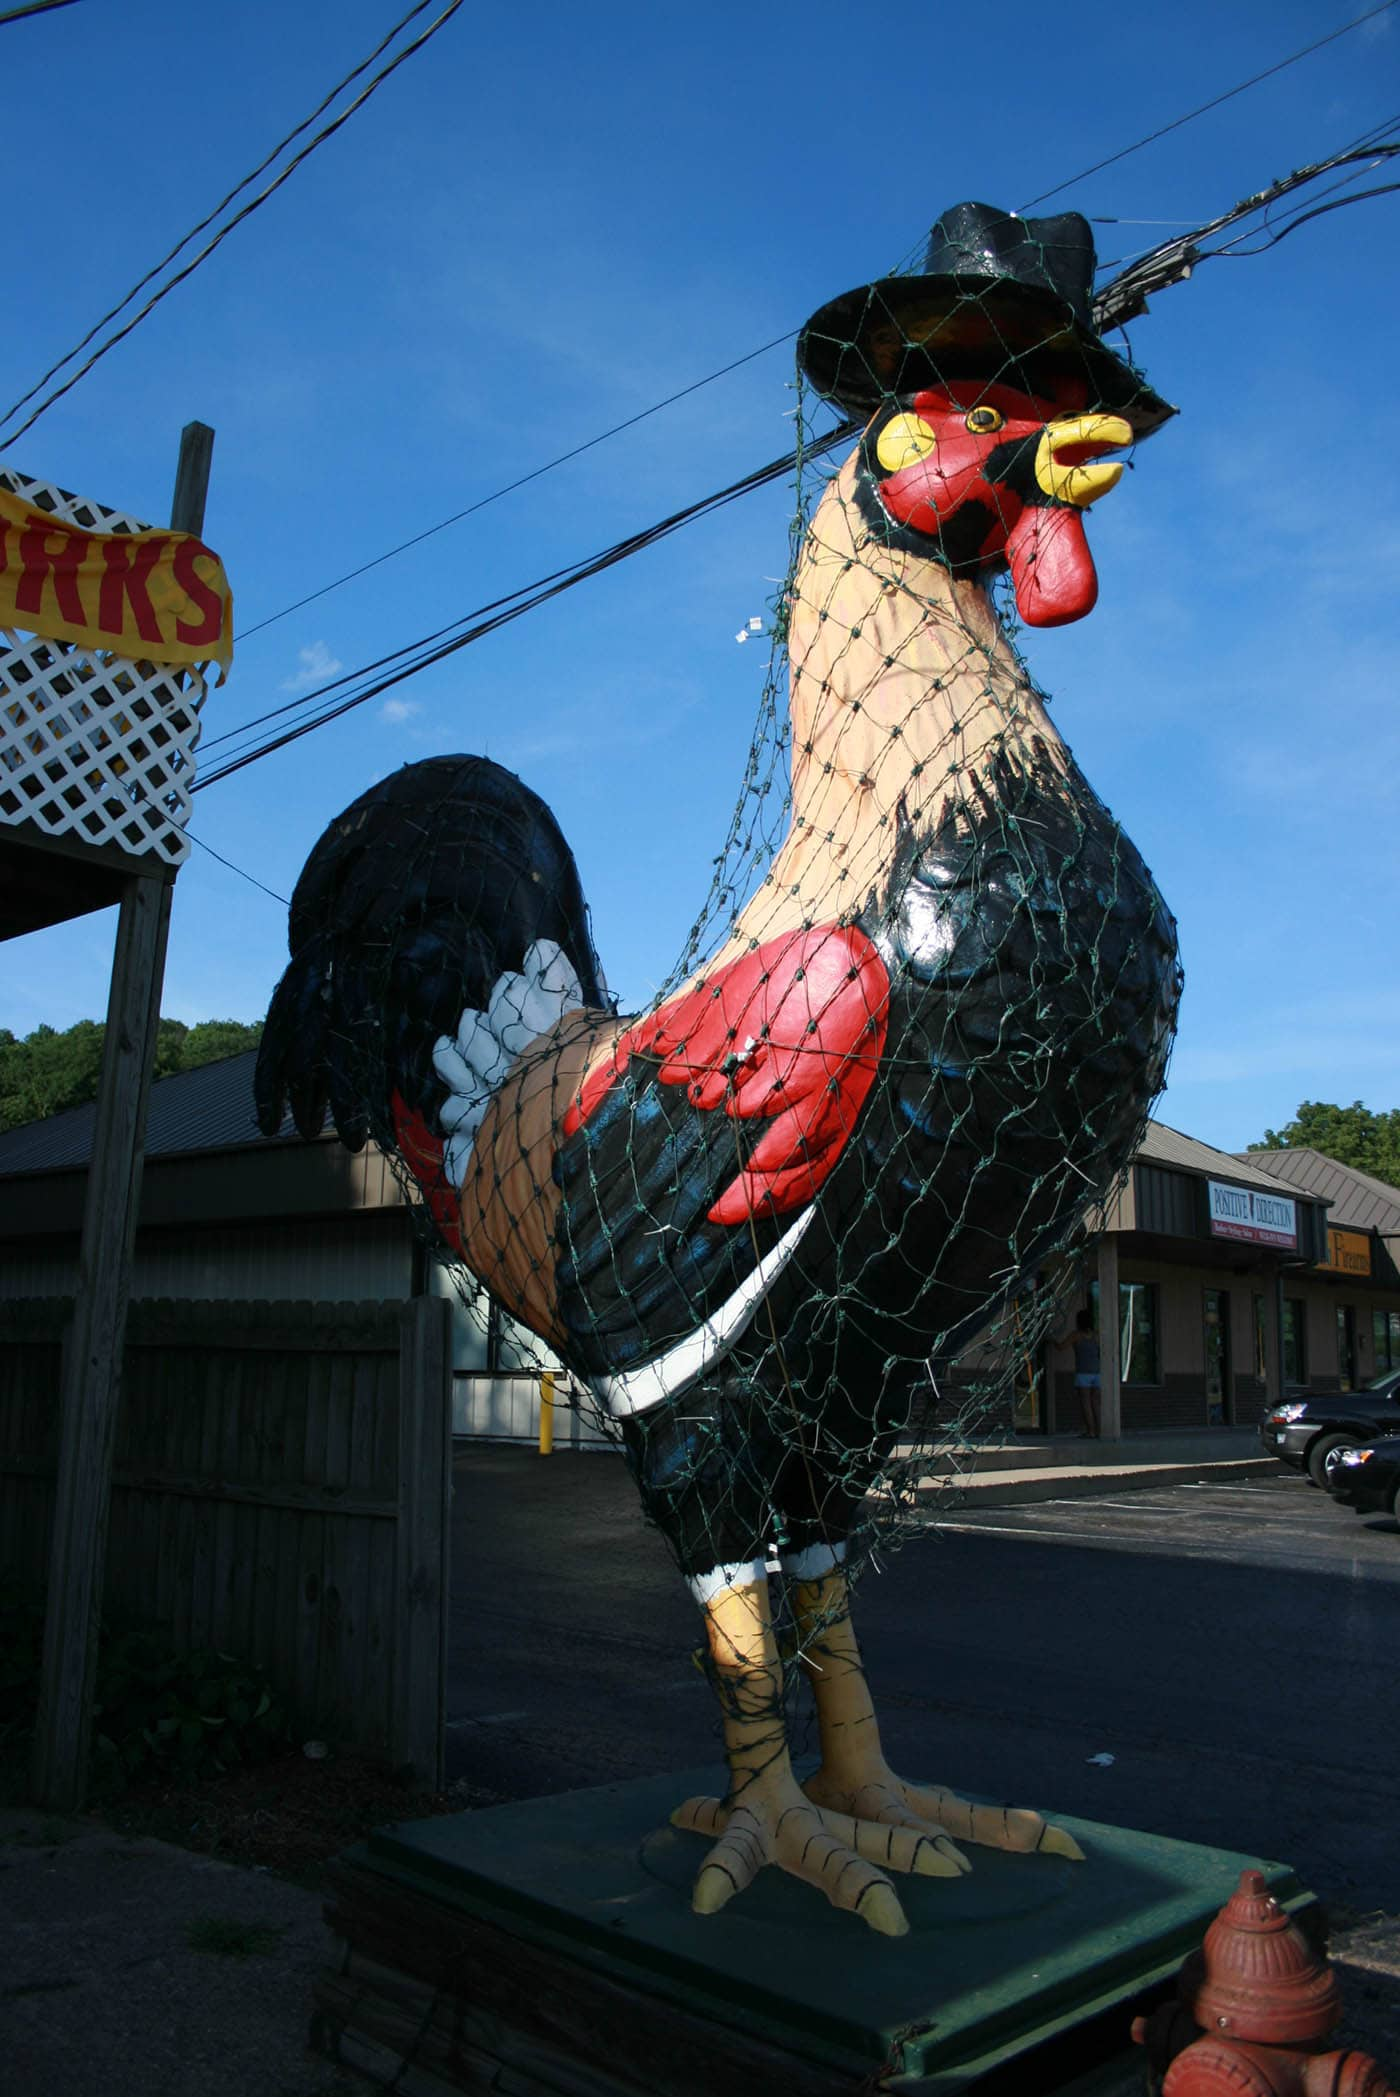 ILLINOIS ROAD TRIP AND ROADSIDE ATTRACTIONS: ROOSTER IN A TOP HAT IN EAST PEORIA